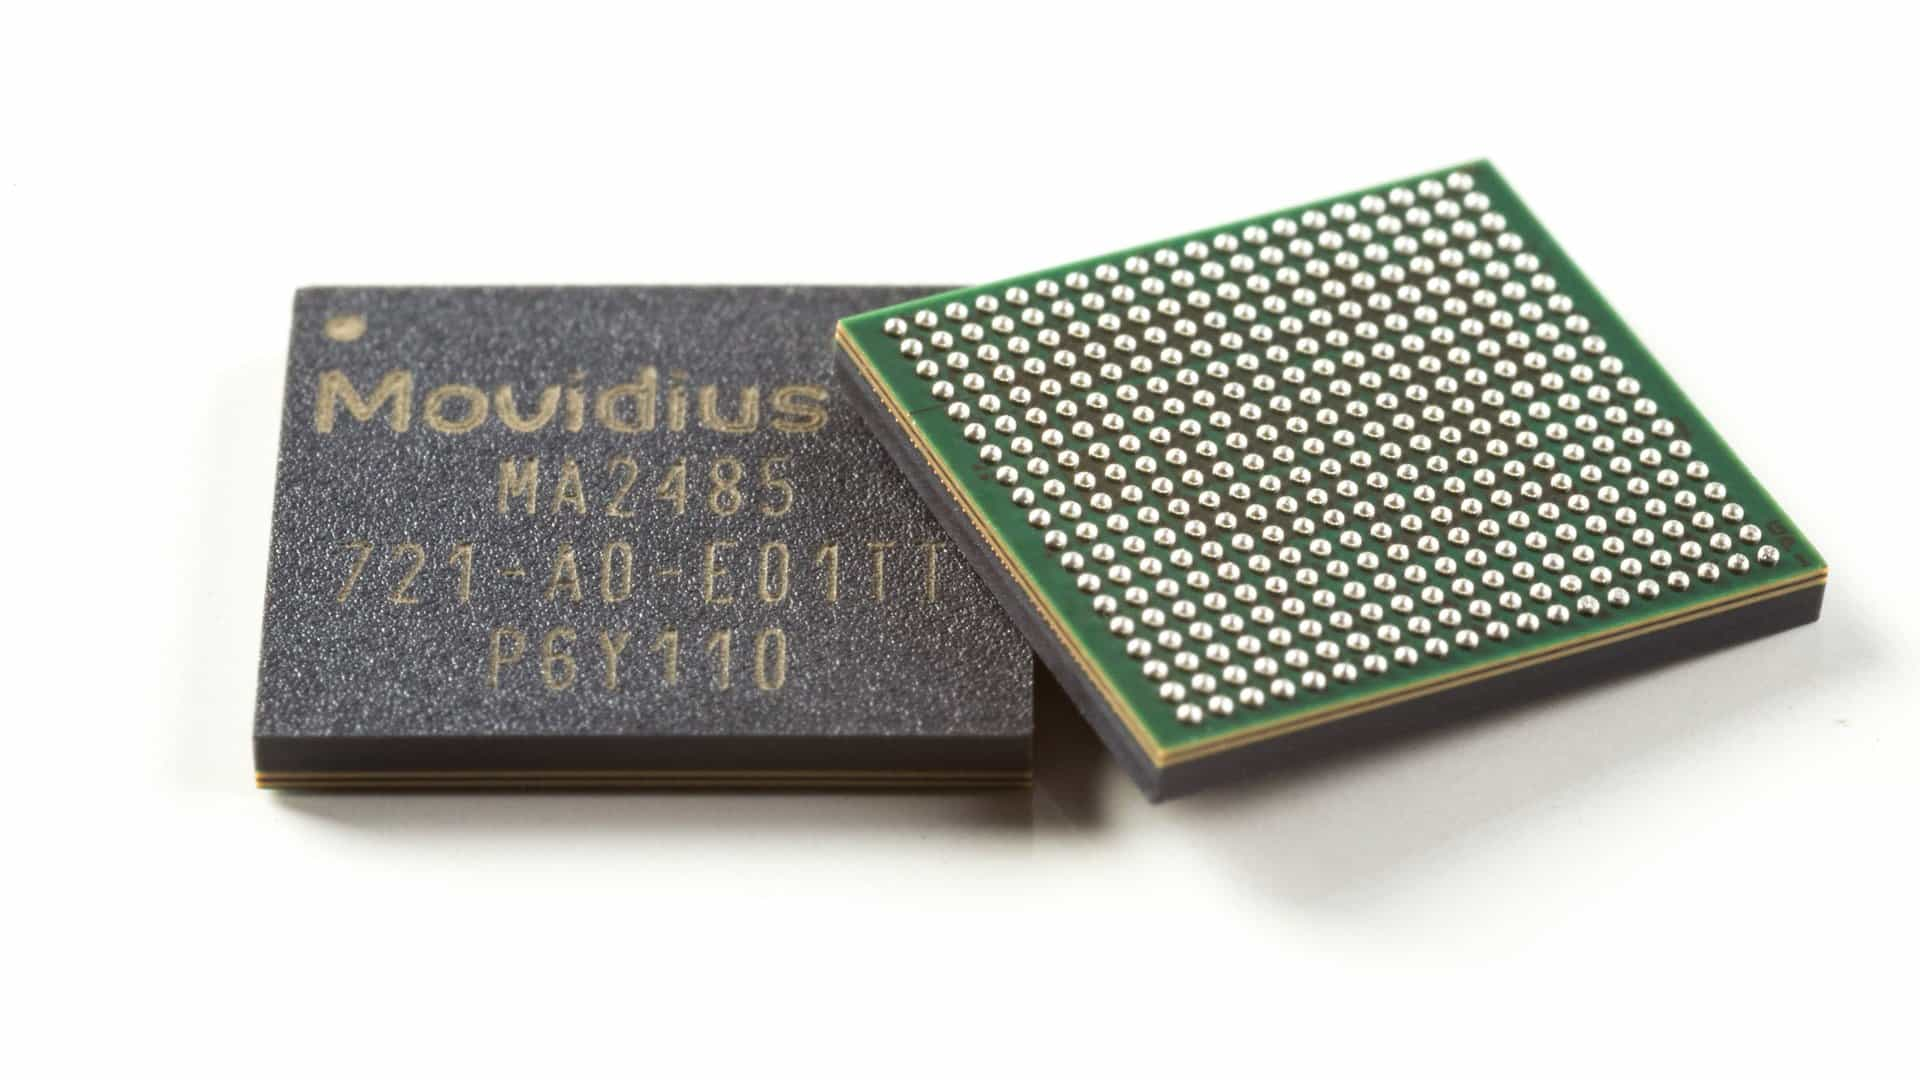 intel-movidius-myriad-x-bga-soc-cip-1600